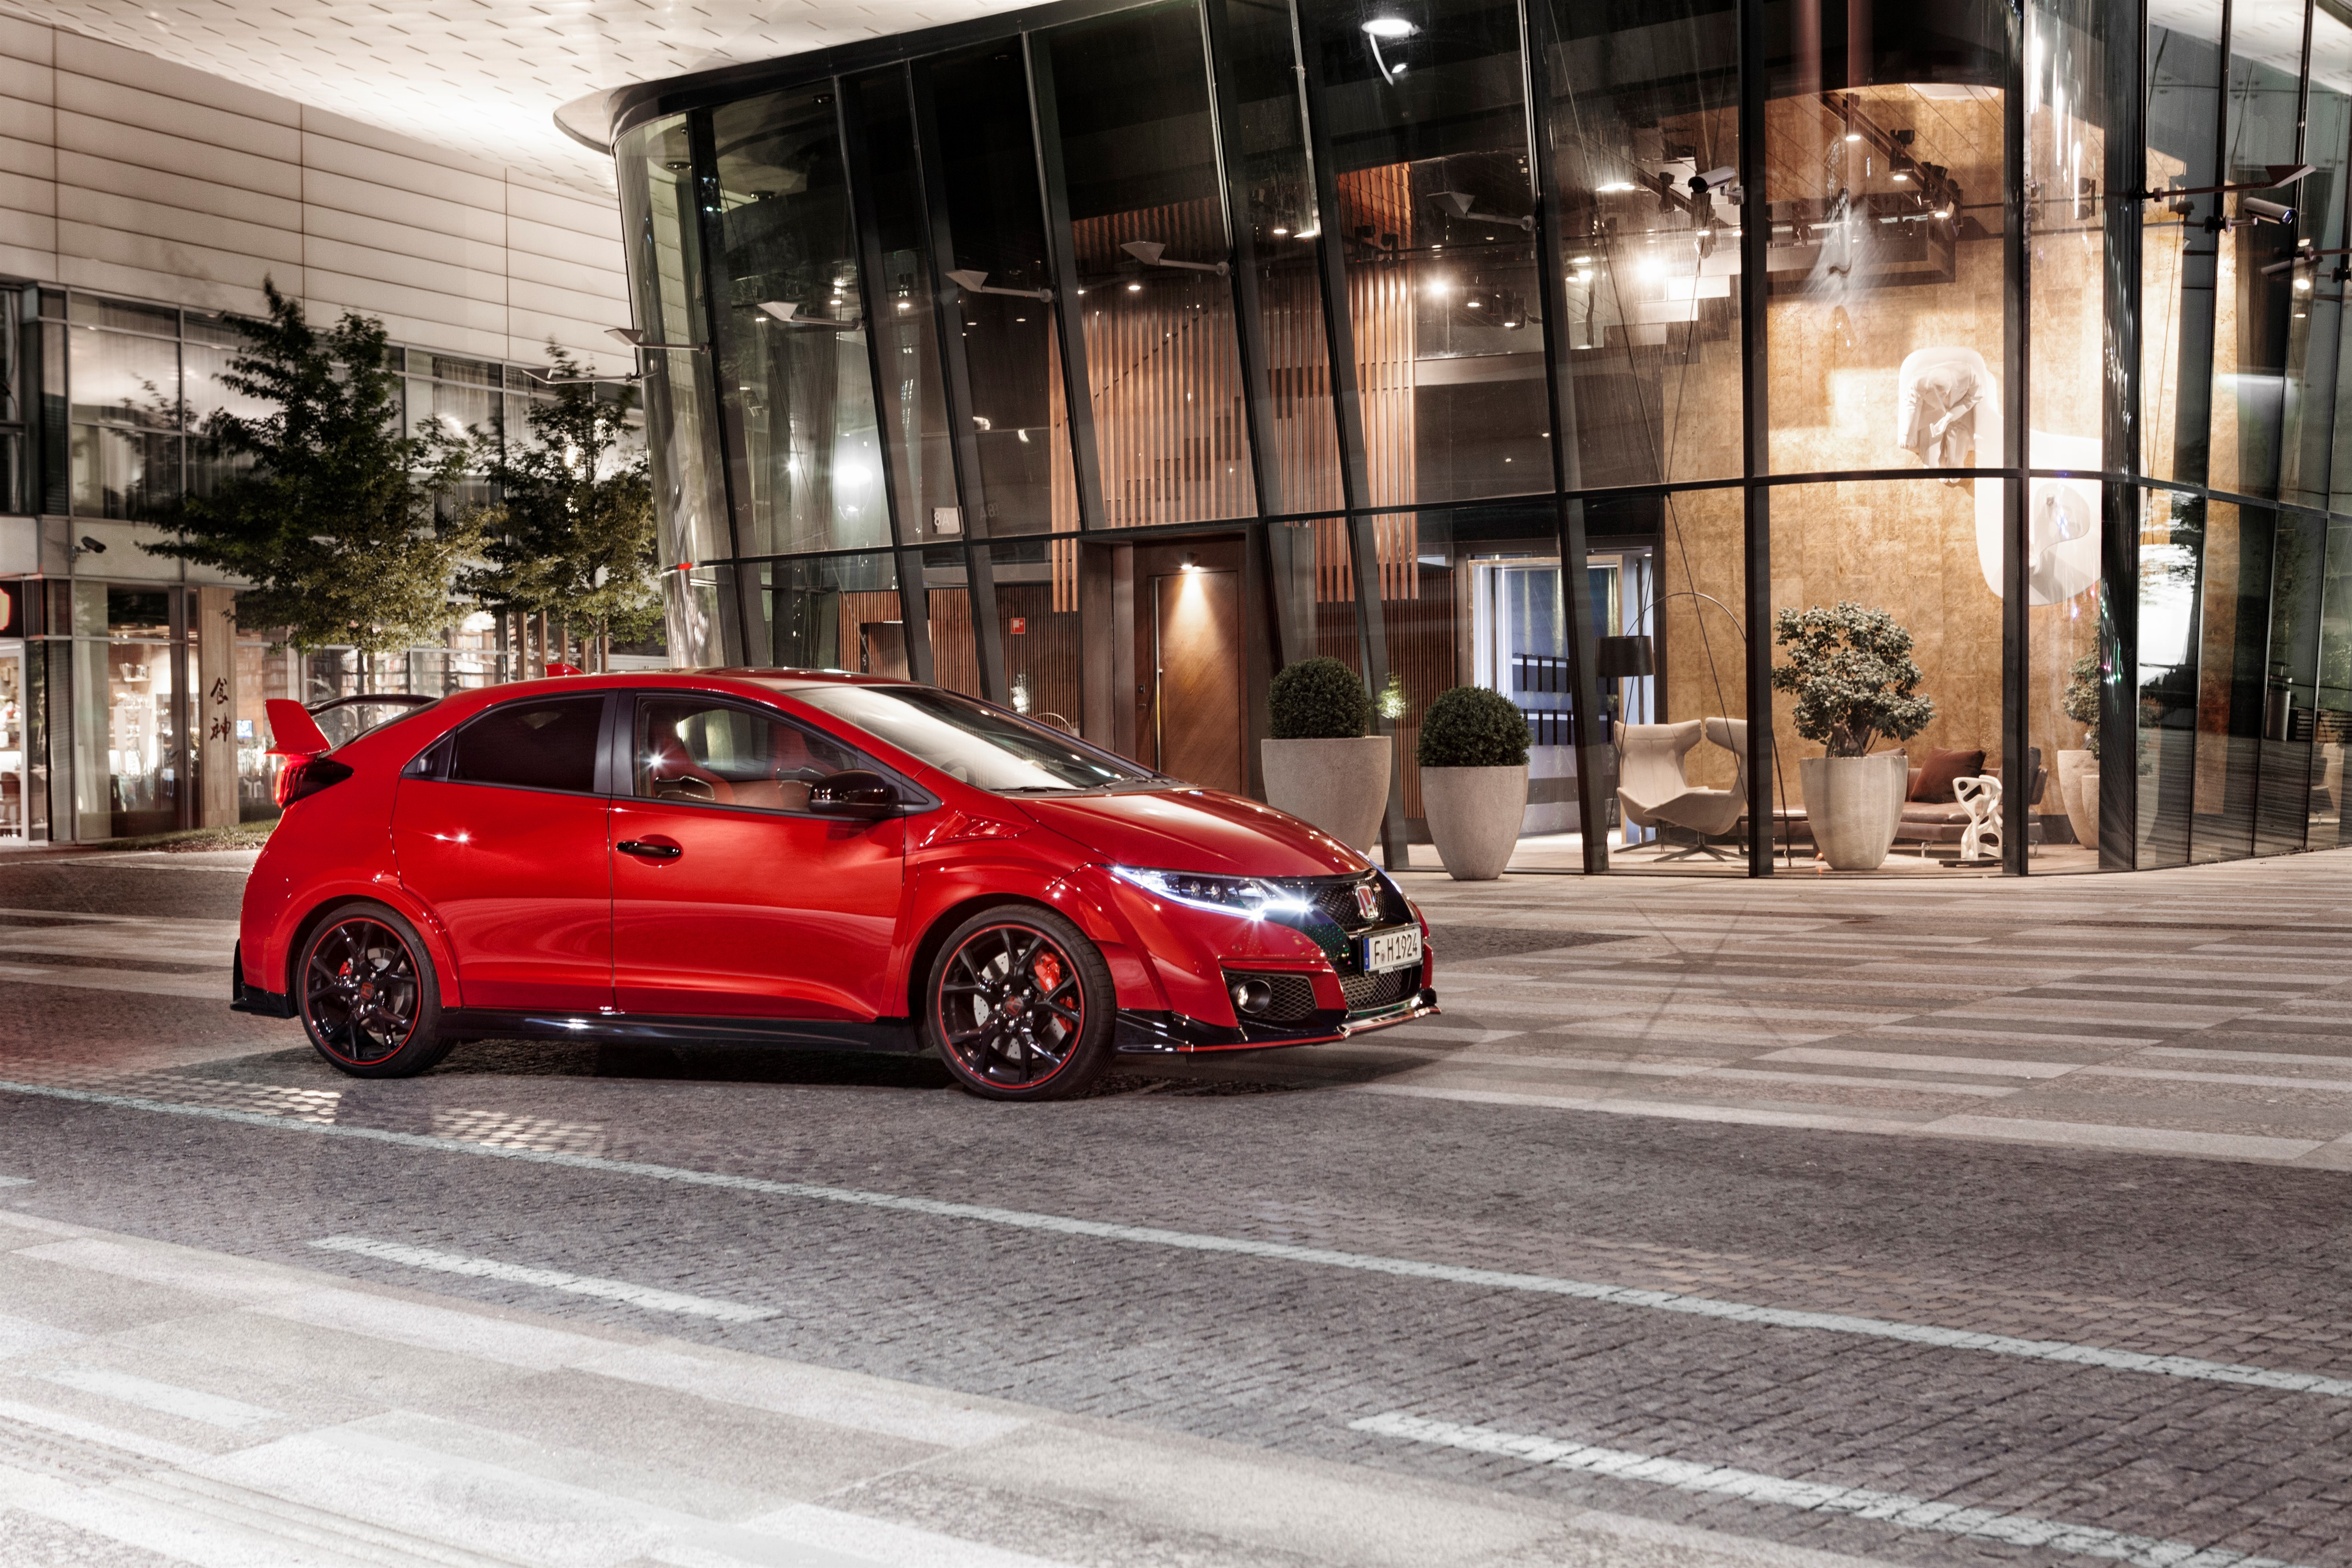 2015 Honda Civic Type R FK2 static